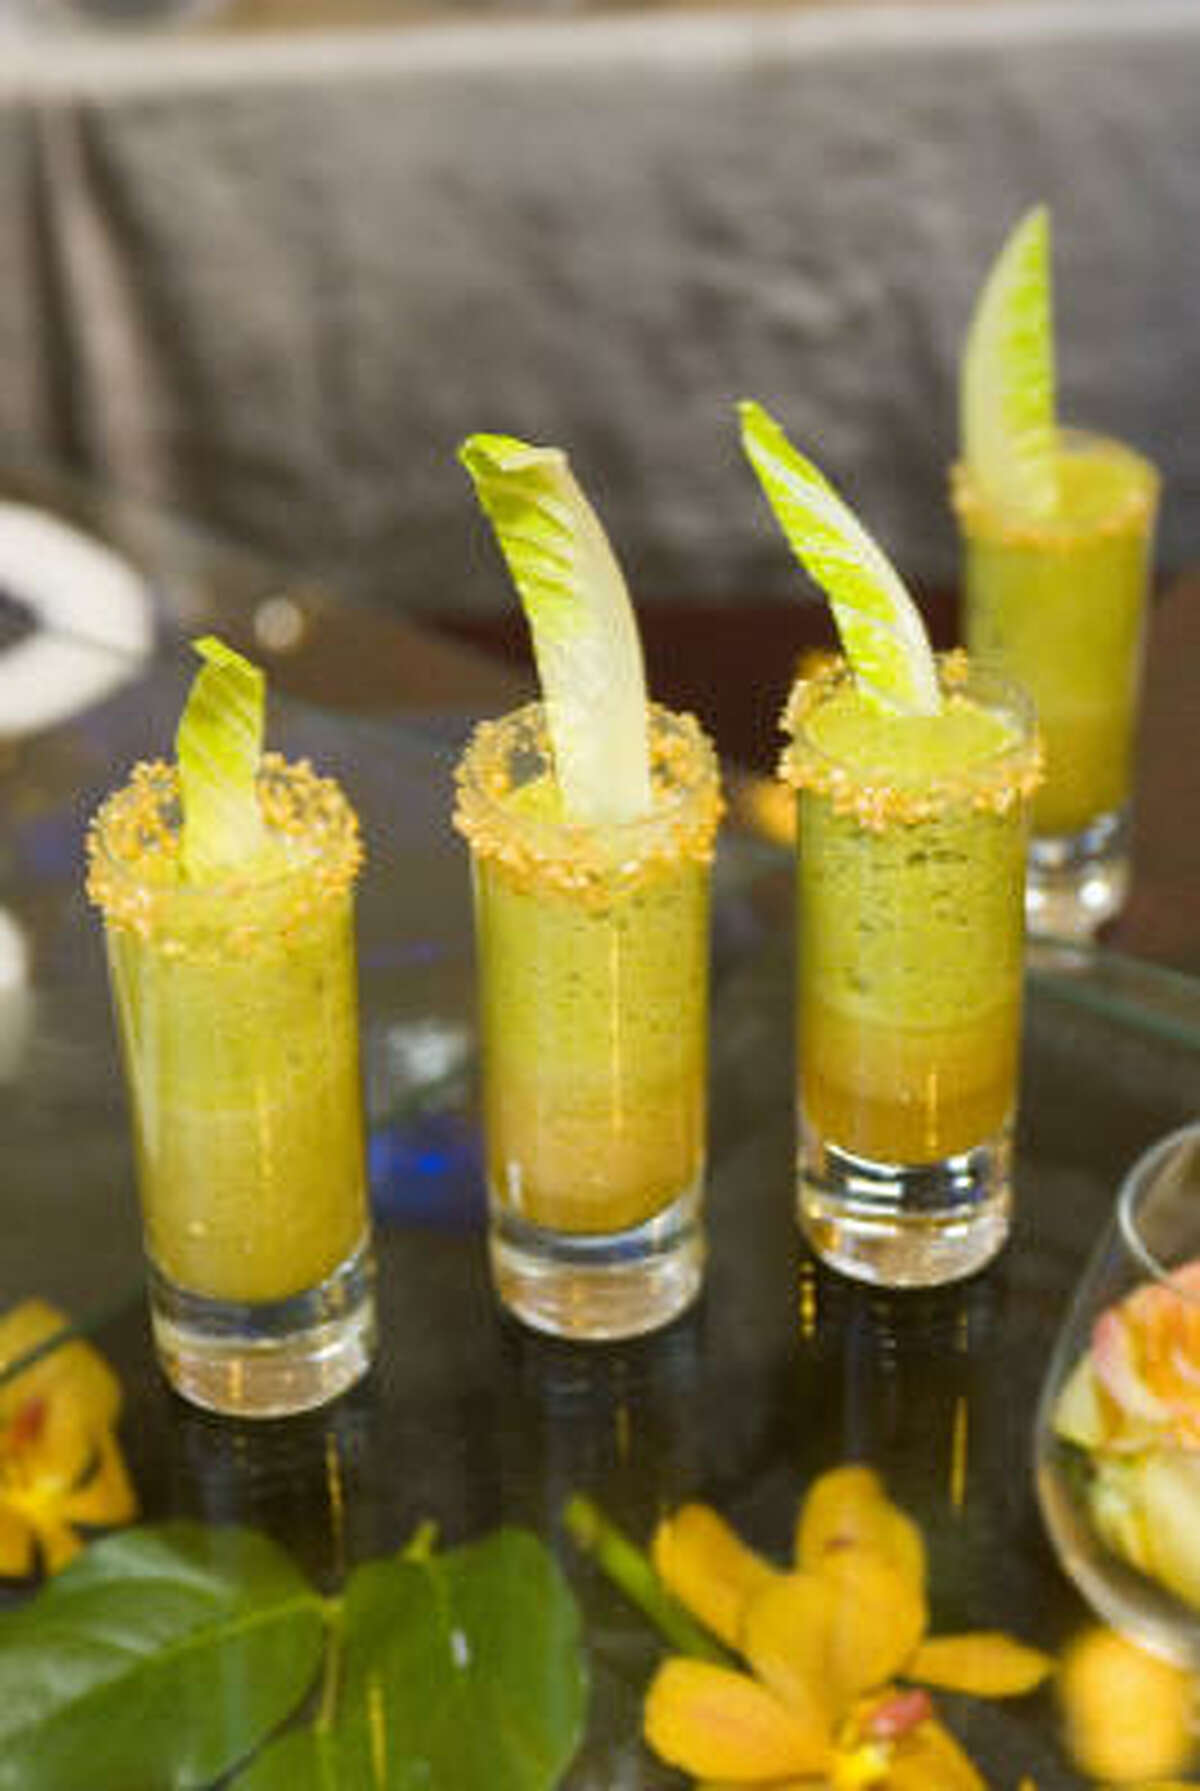 Parmesan broth and cilantro foam are part of an Asian Caesar shooter.